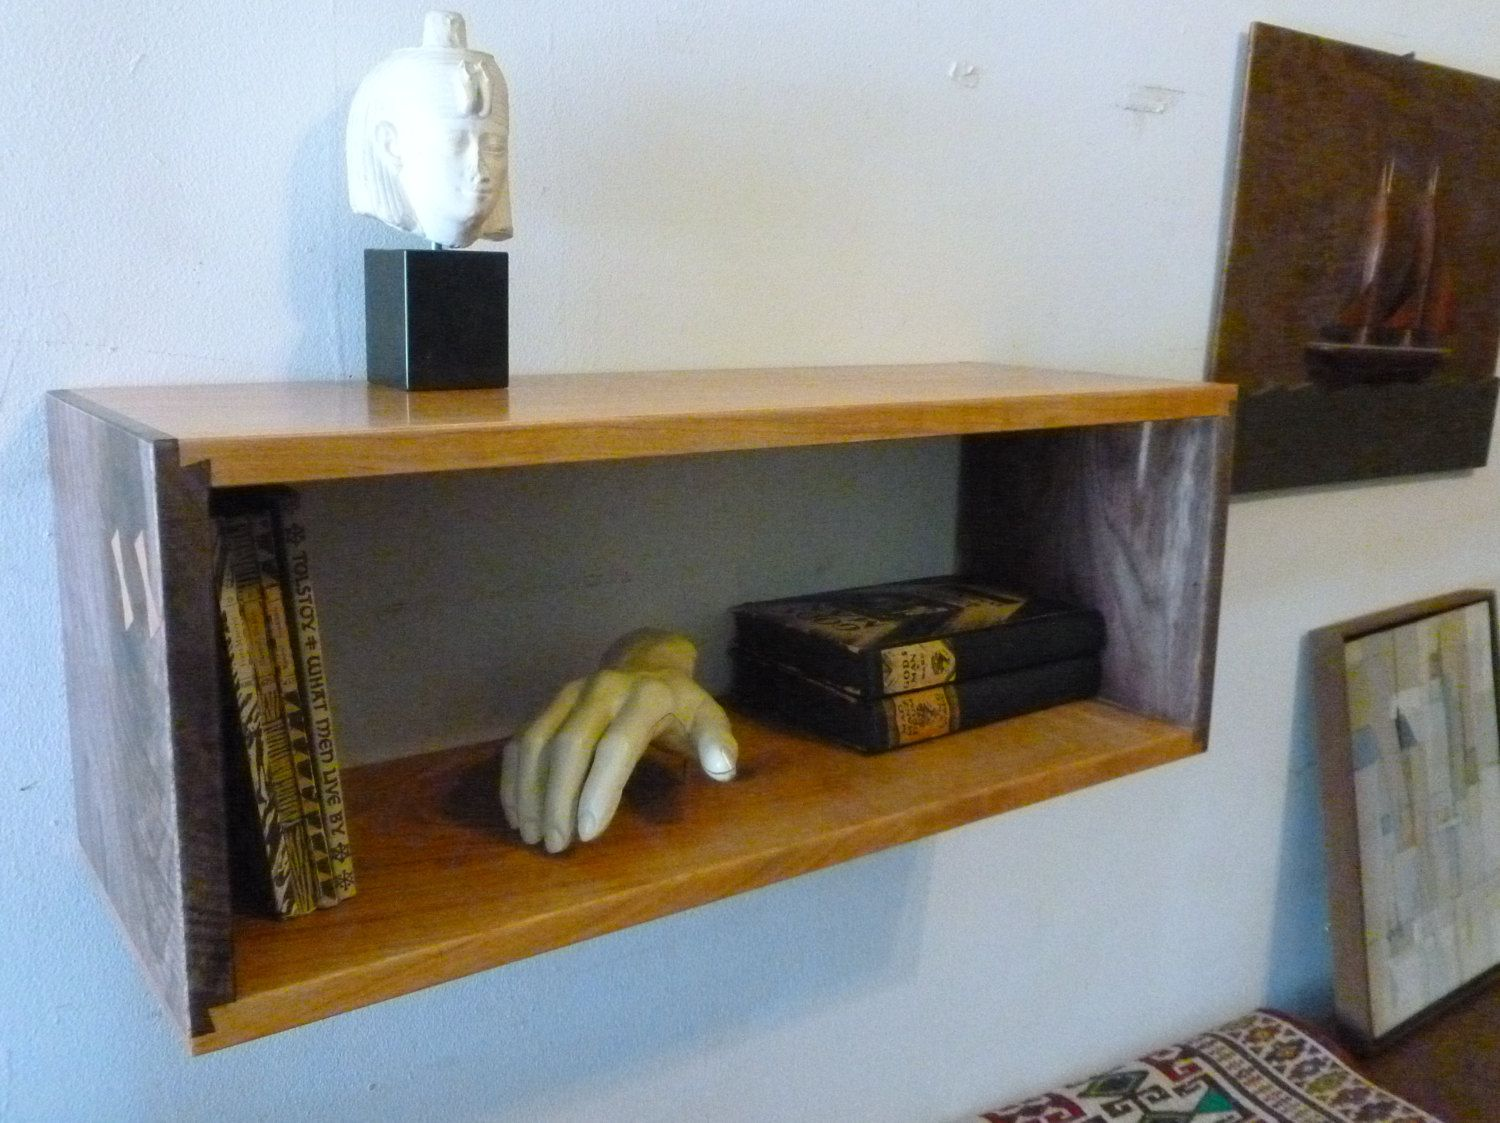 single simple elegant walnut and cherry dovetail floating wall boxes shelves finish box shelf finely finished ready hang mid century style via etsy kitchen cookbook fireplace back